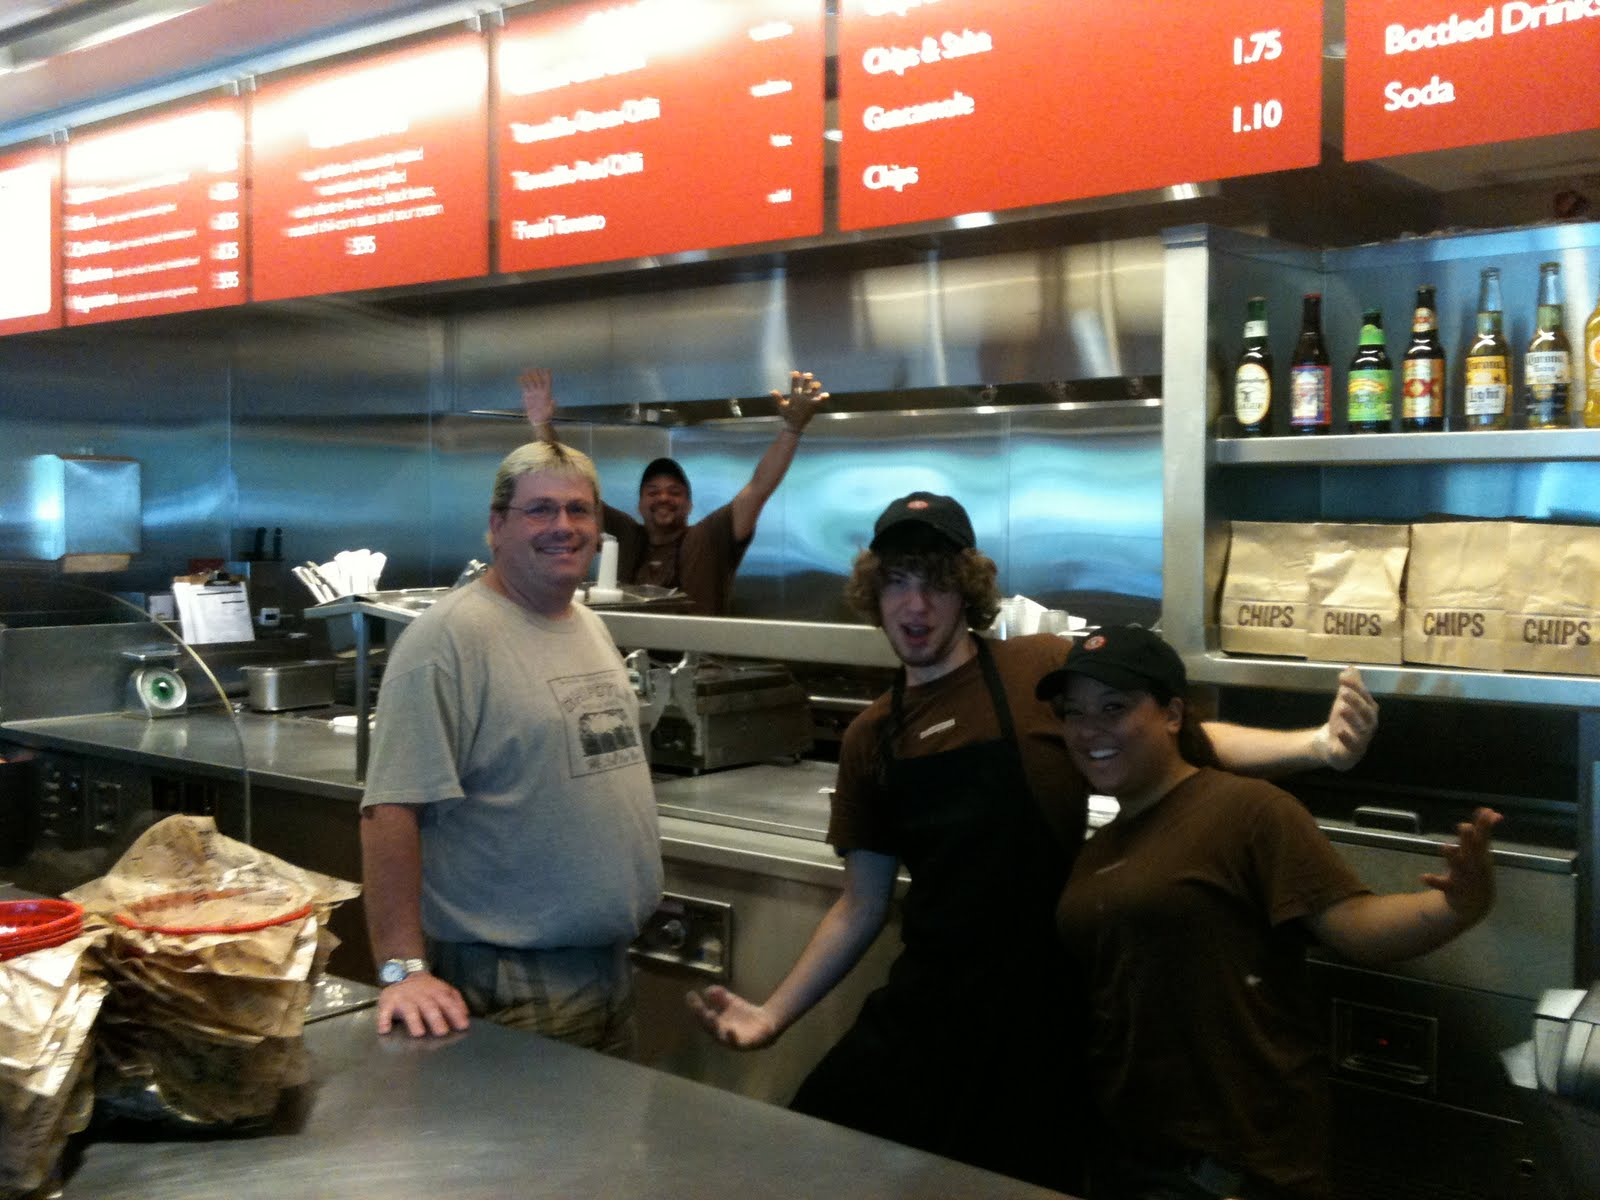 chipotle the challenges of integrity Chipotle mexican grill, inc (/ t a writer for the north carolina newspaper the news & observer called chipotle's food with integrity a lucrative farce and a.